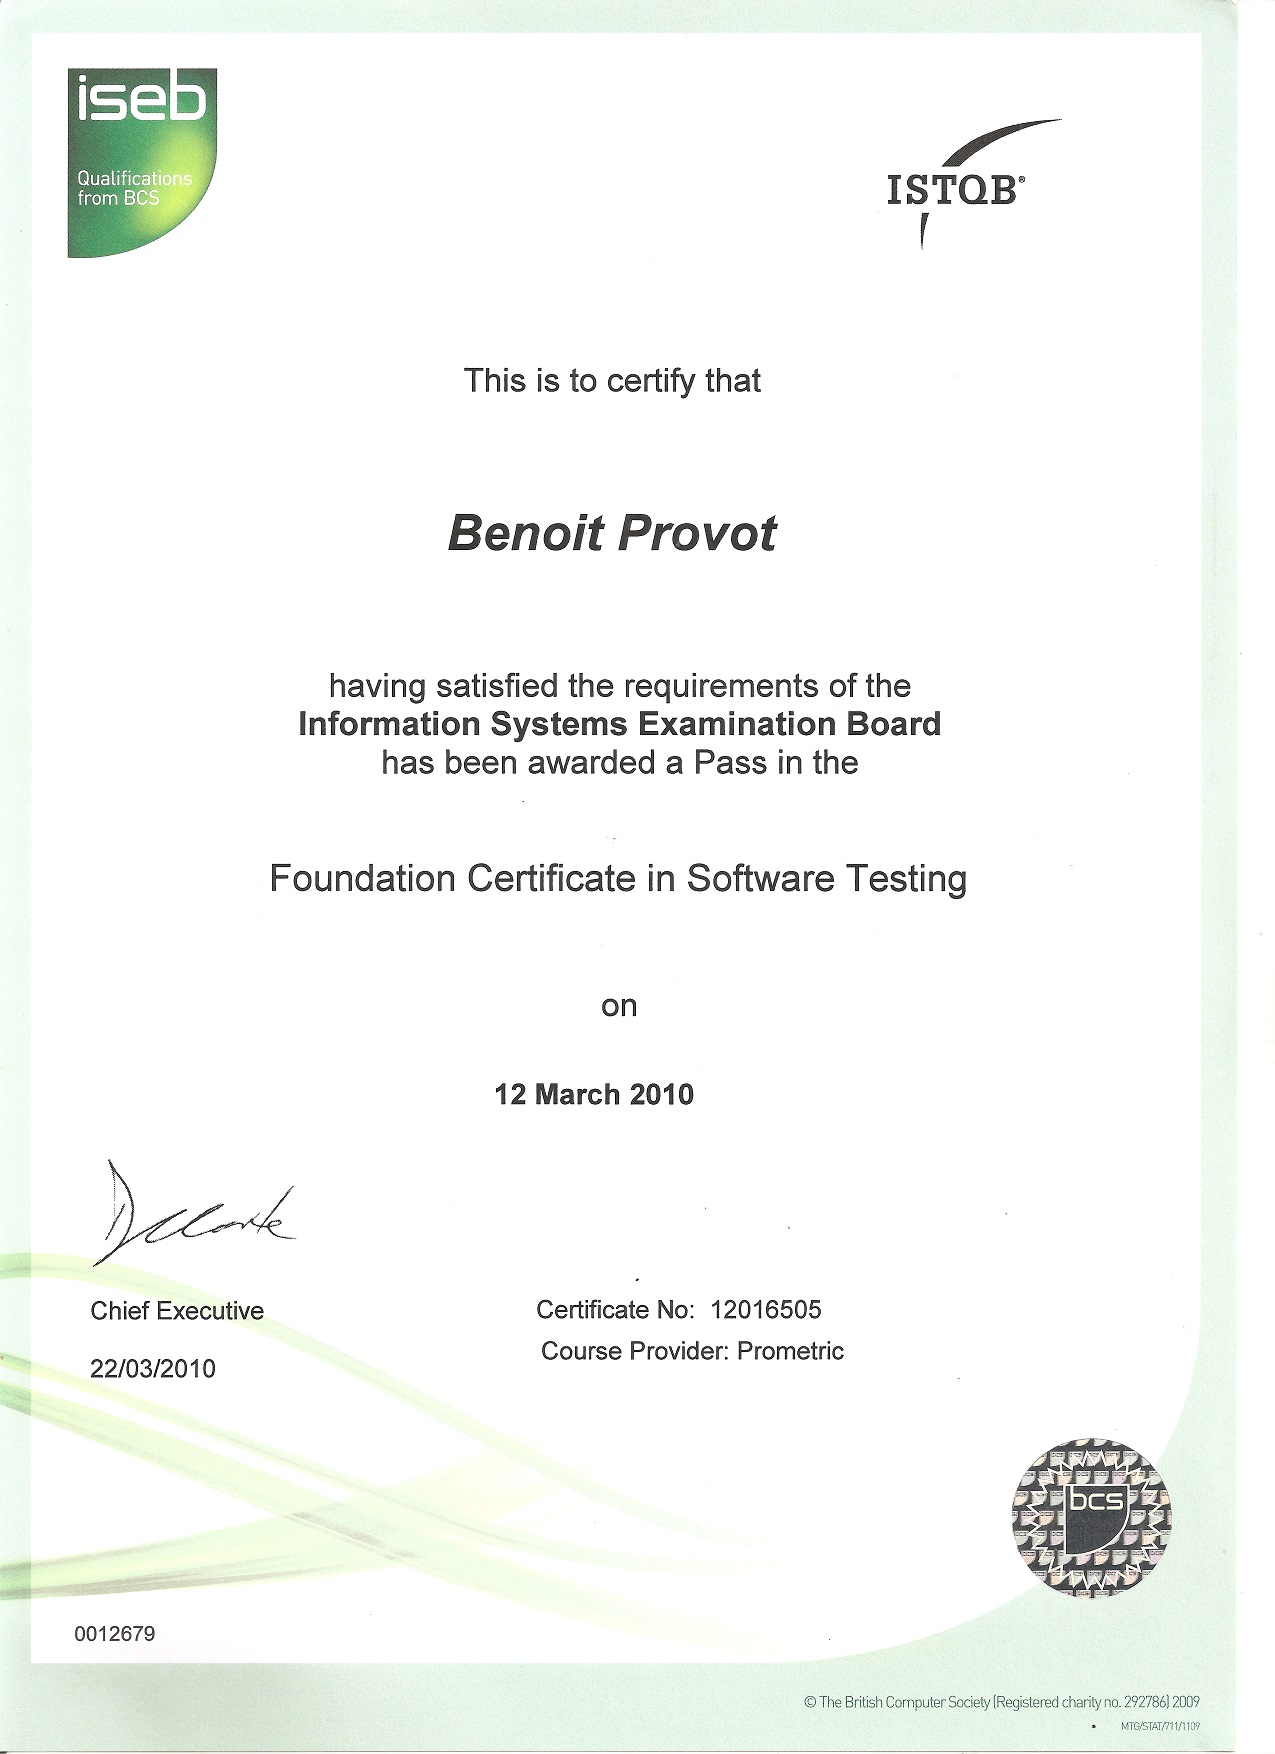 Cv benot provt iseb istqb certification in software testing 1betcityfo Image collections